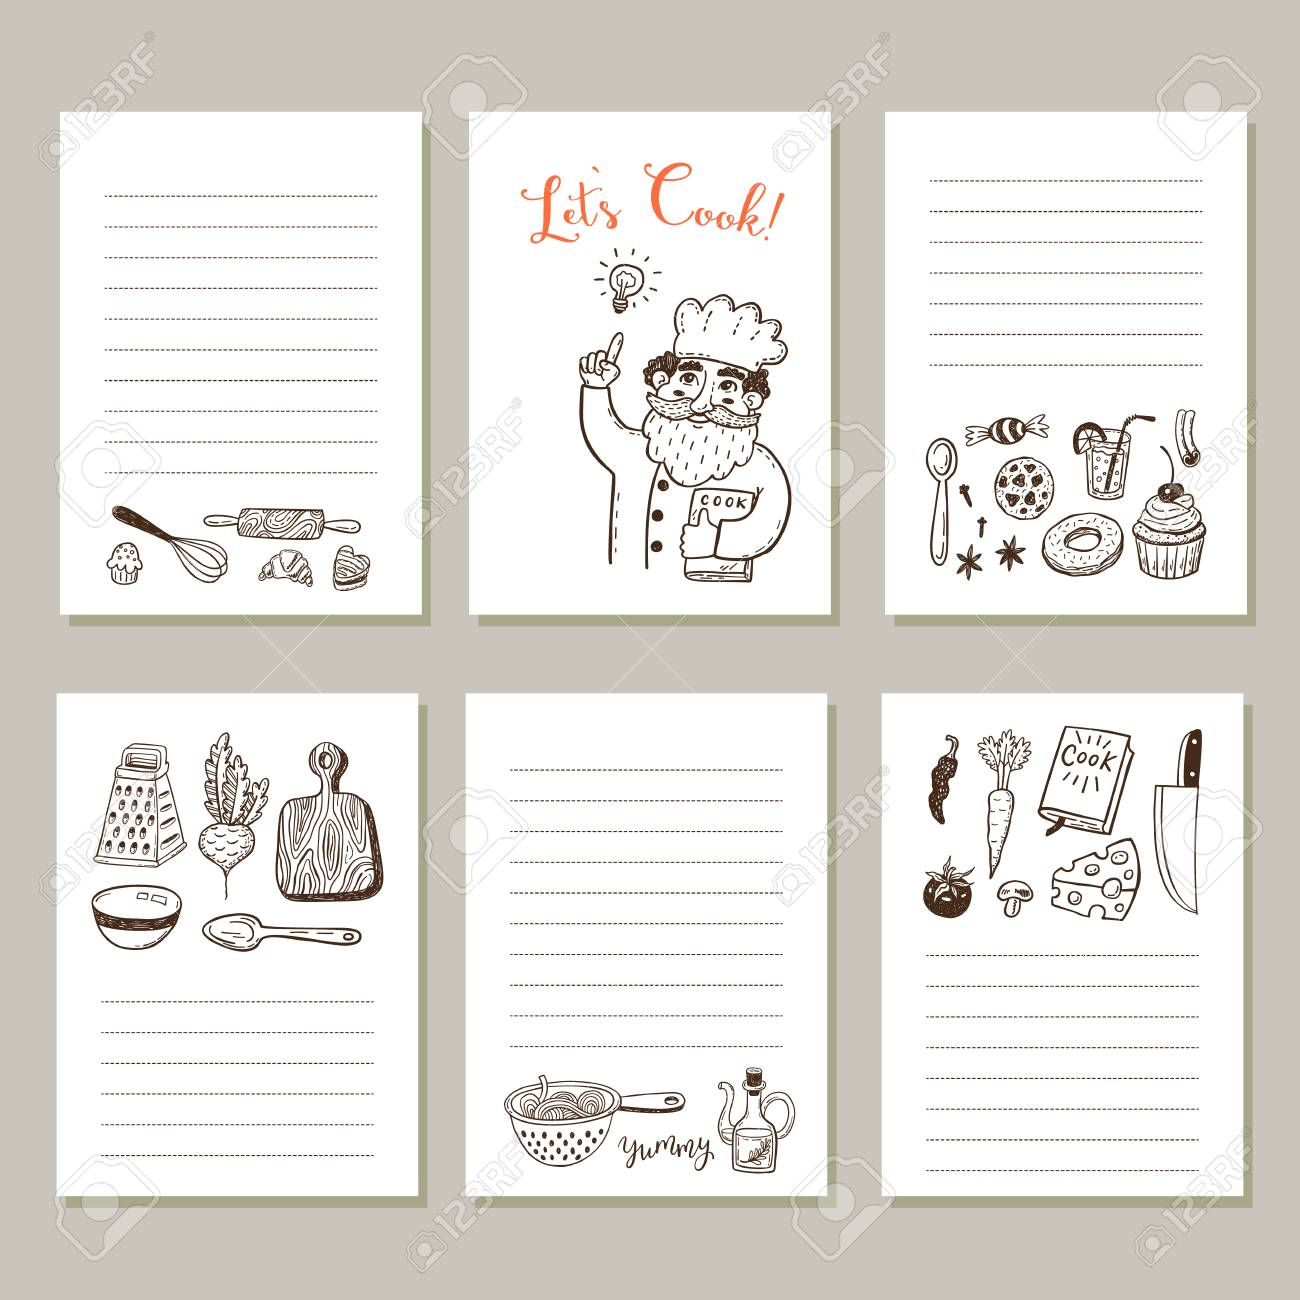 Page Template Set For Notes Or Cooking Recipe Cards With Hand